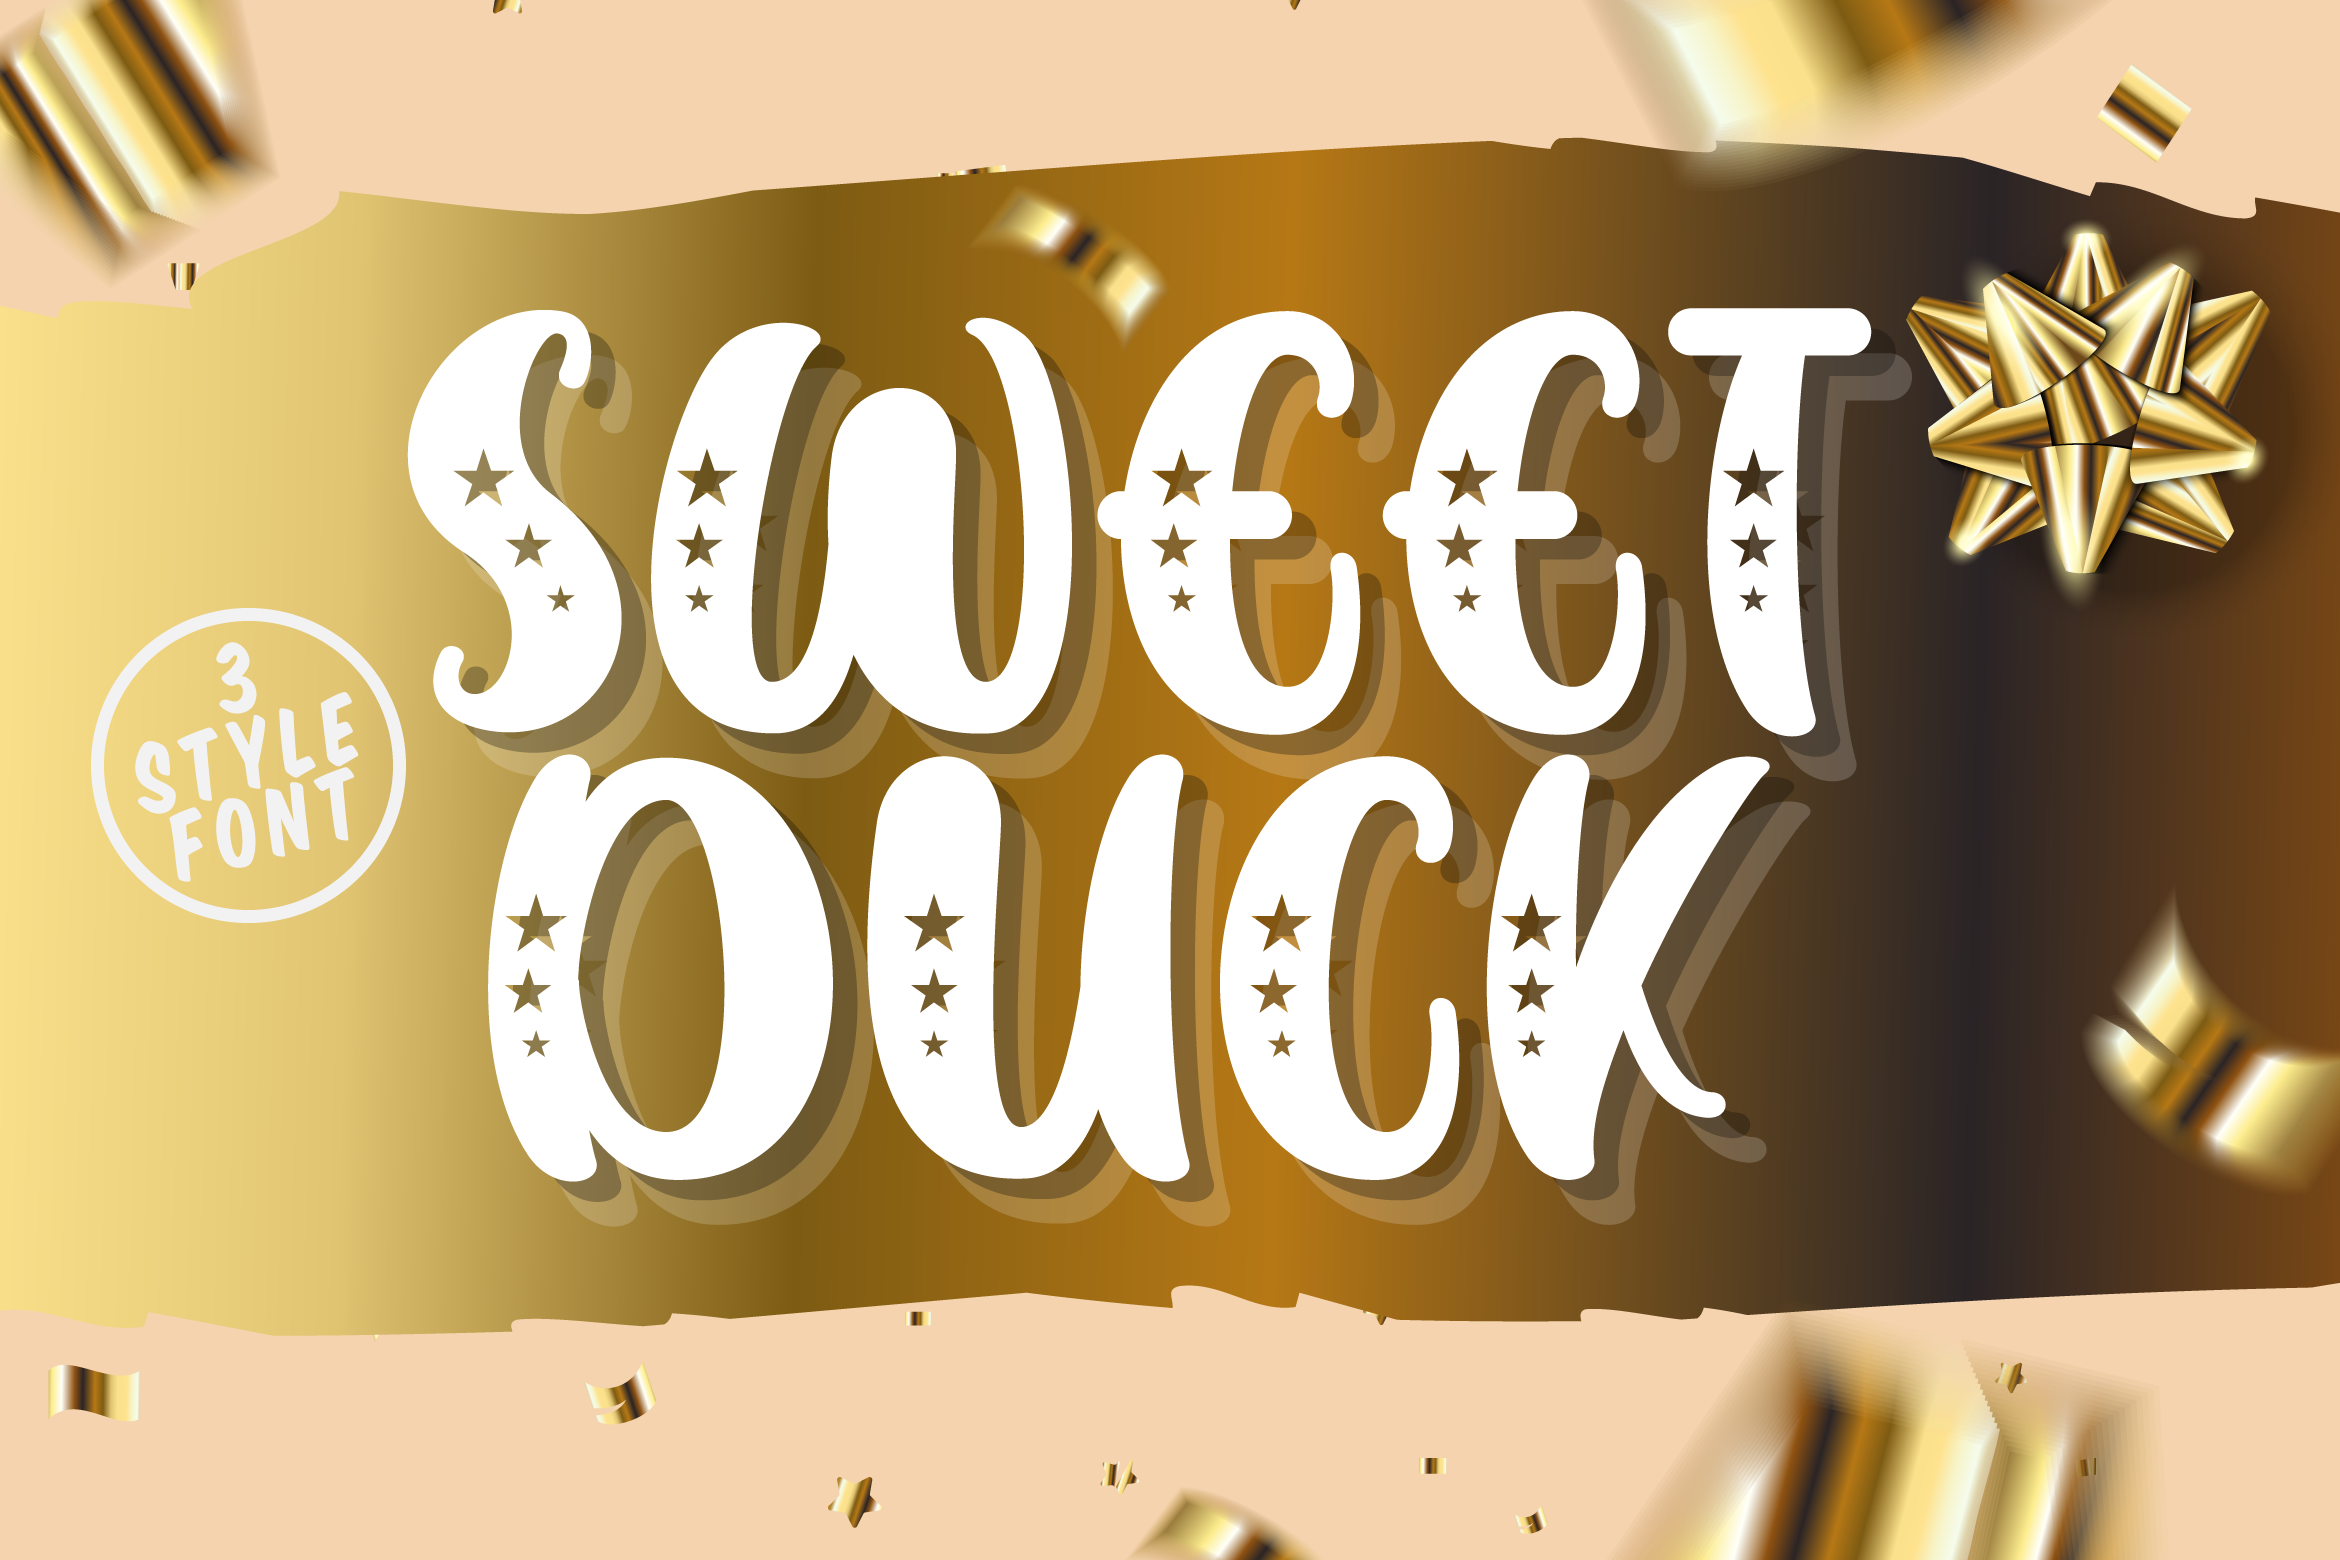 Sweet Duck - A Cute Sans Font example image 1